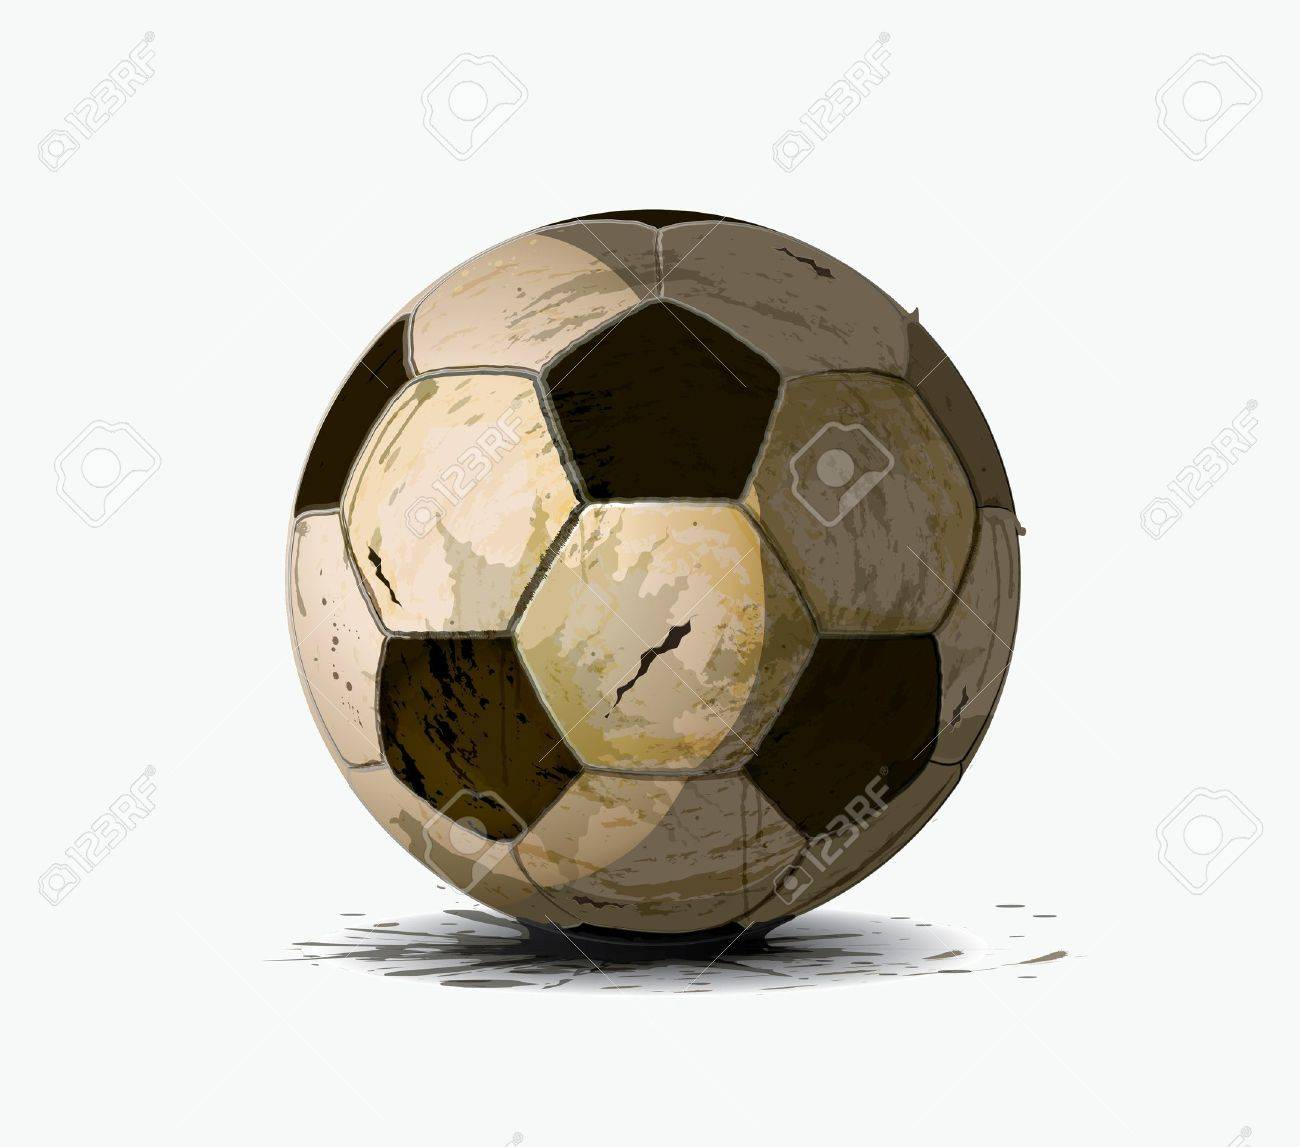 1300x1147 Old Soccer Ball Drawing On A White Background Royalty Free